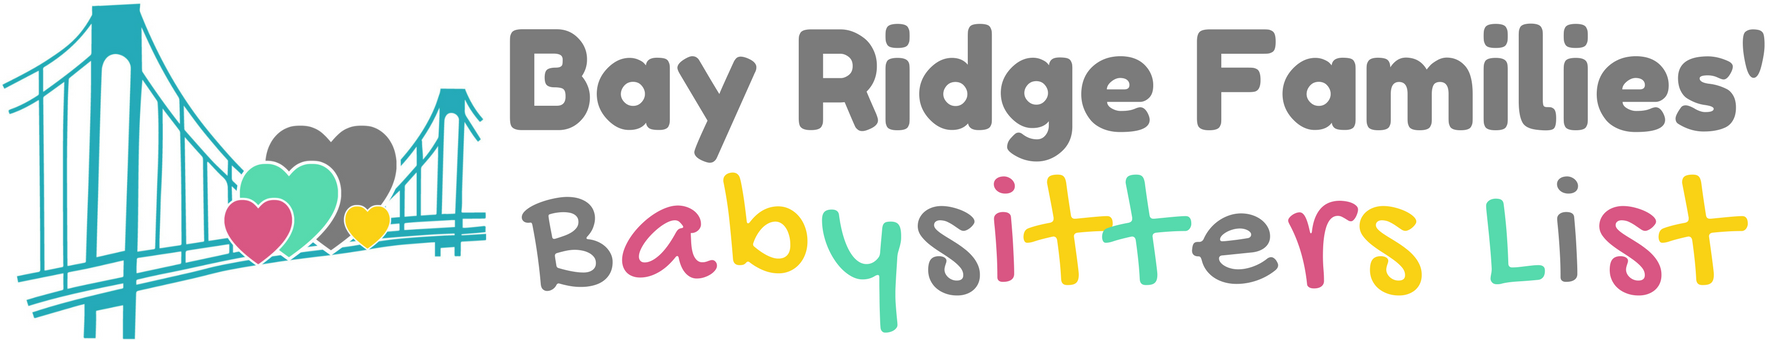 baby sitters in bay ridge brooklyn